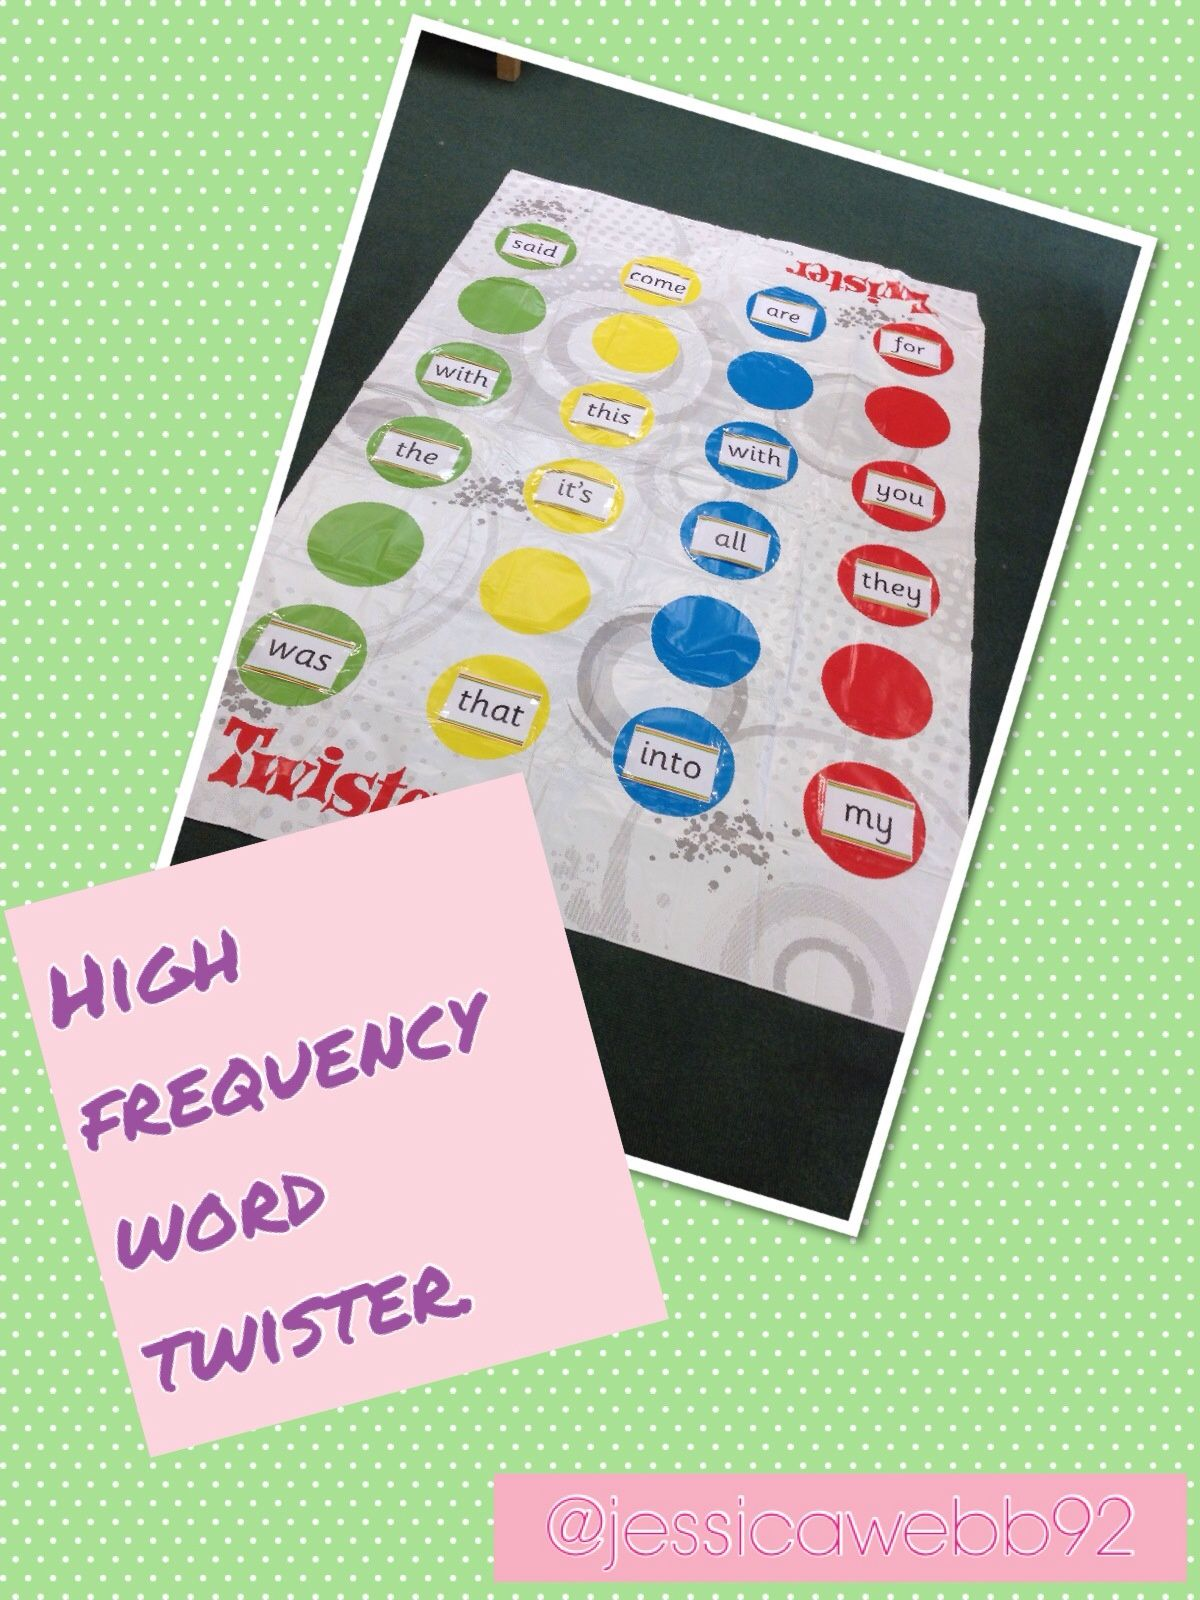 High Frequency Word Twister Eyfs